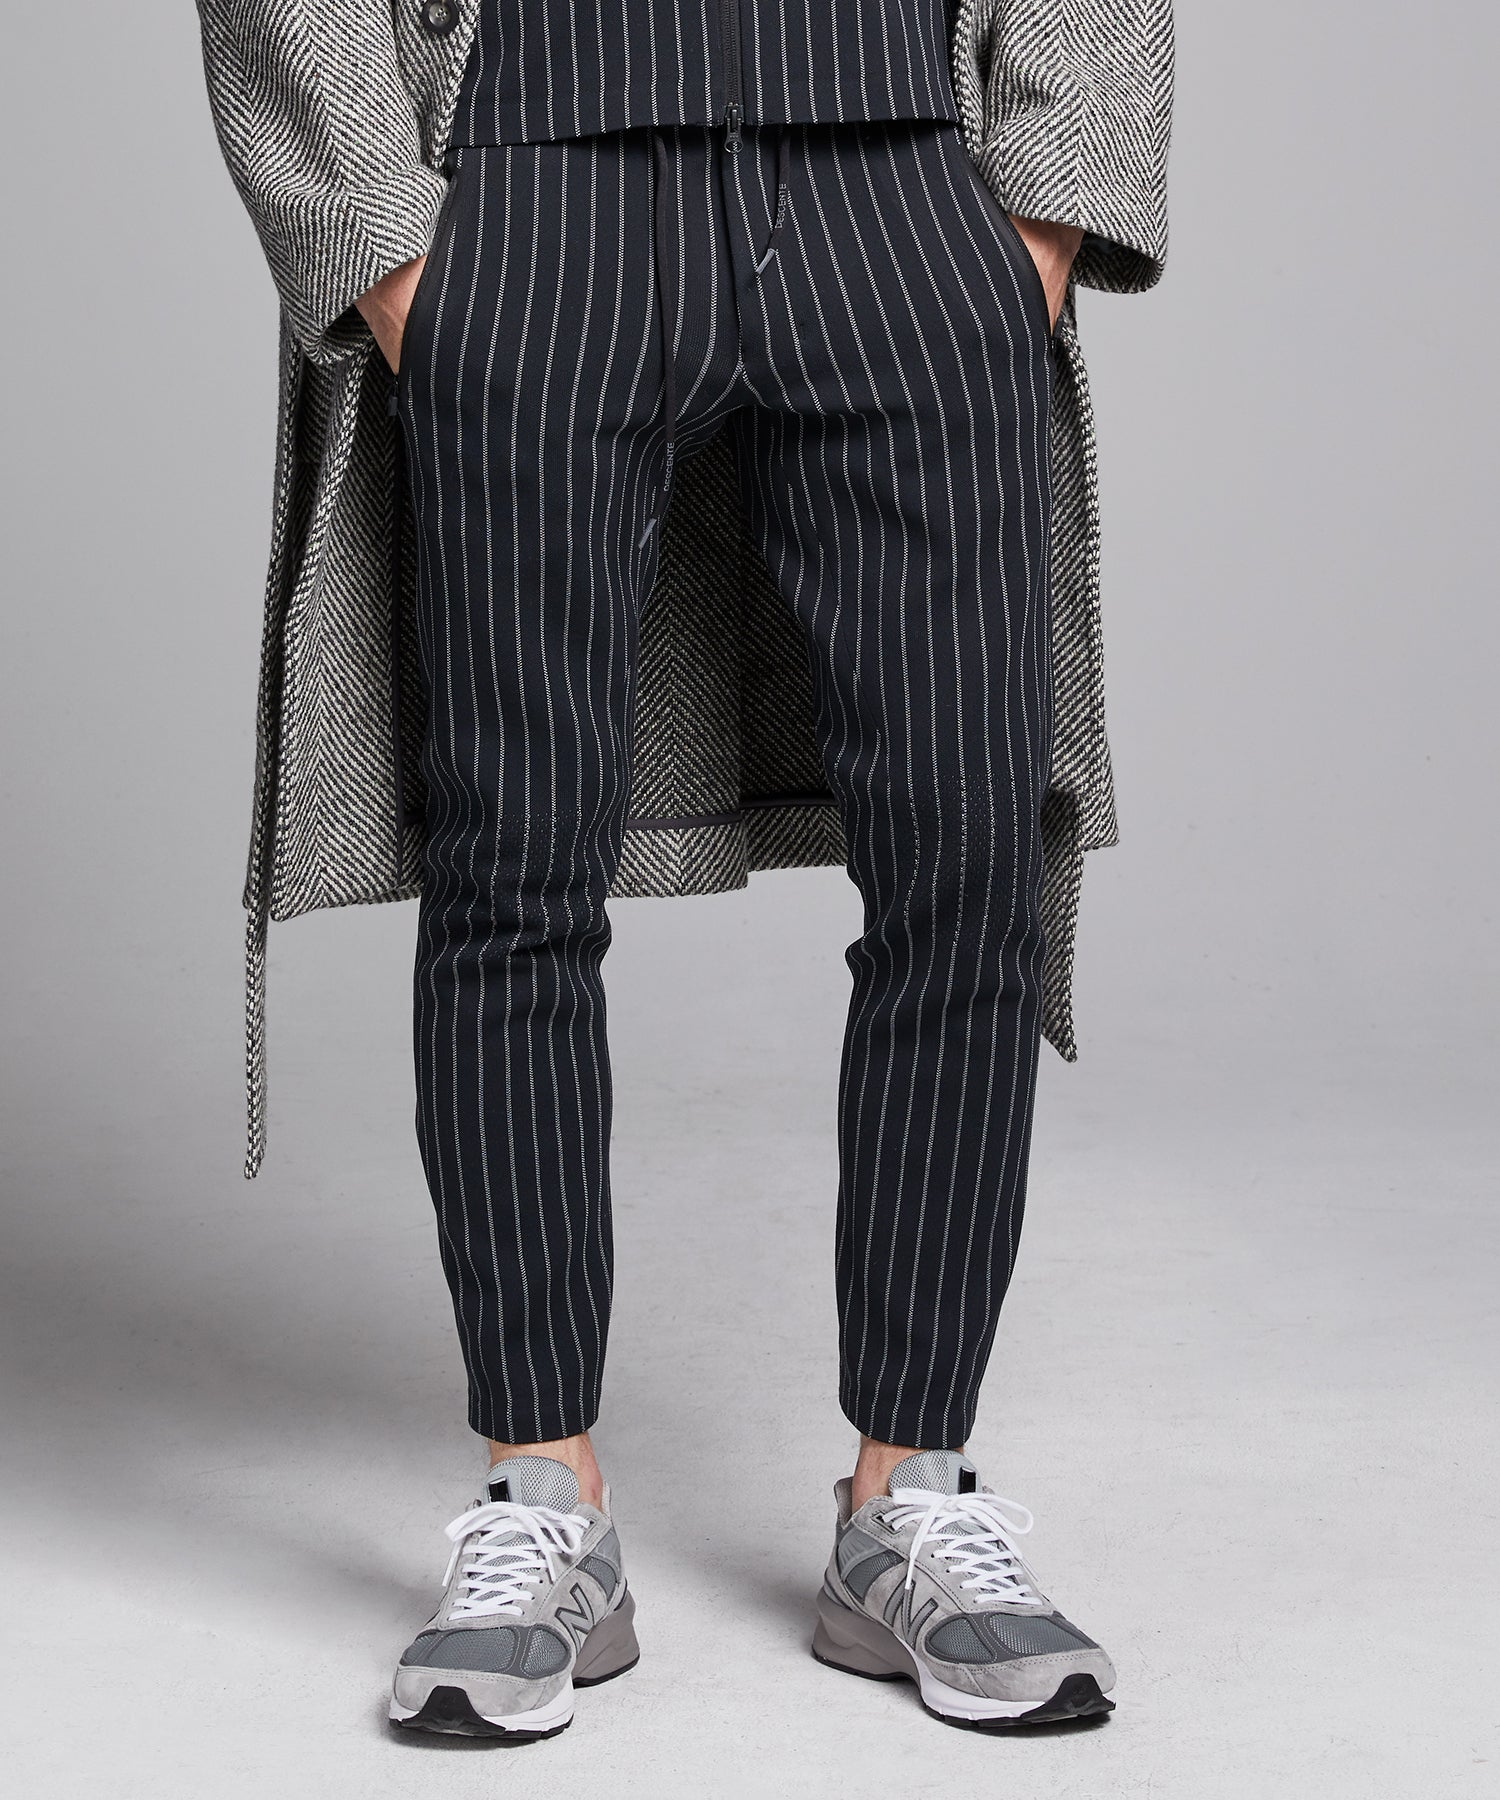 Todd Snyder + Descente Synchknit Long Pants Cloud in Navy Pinstripe